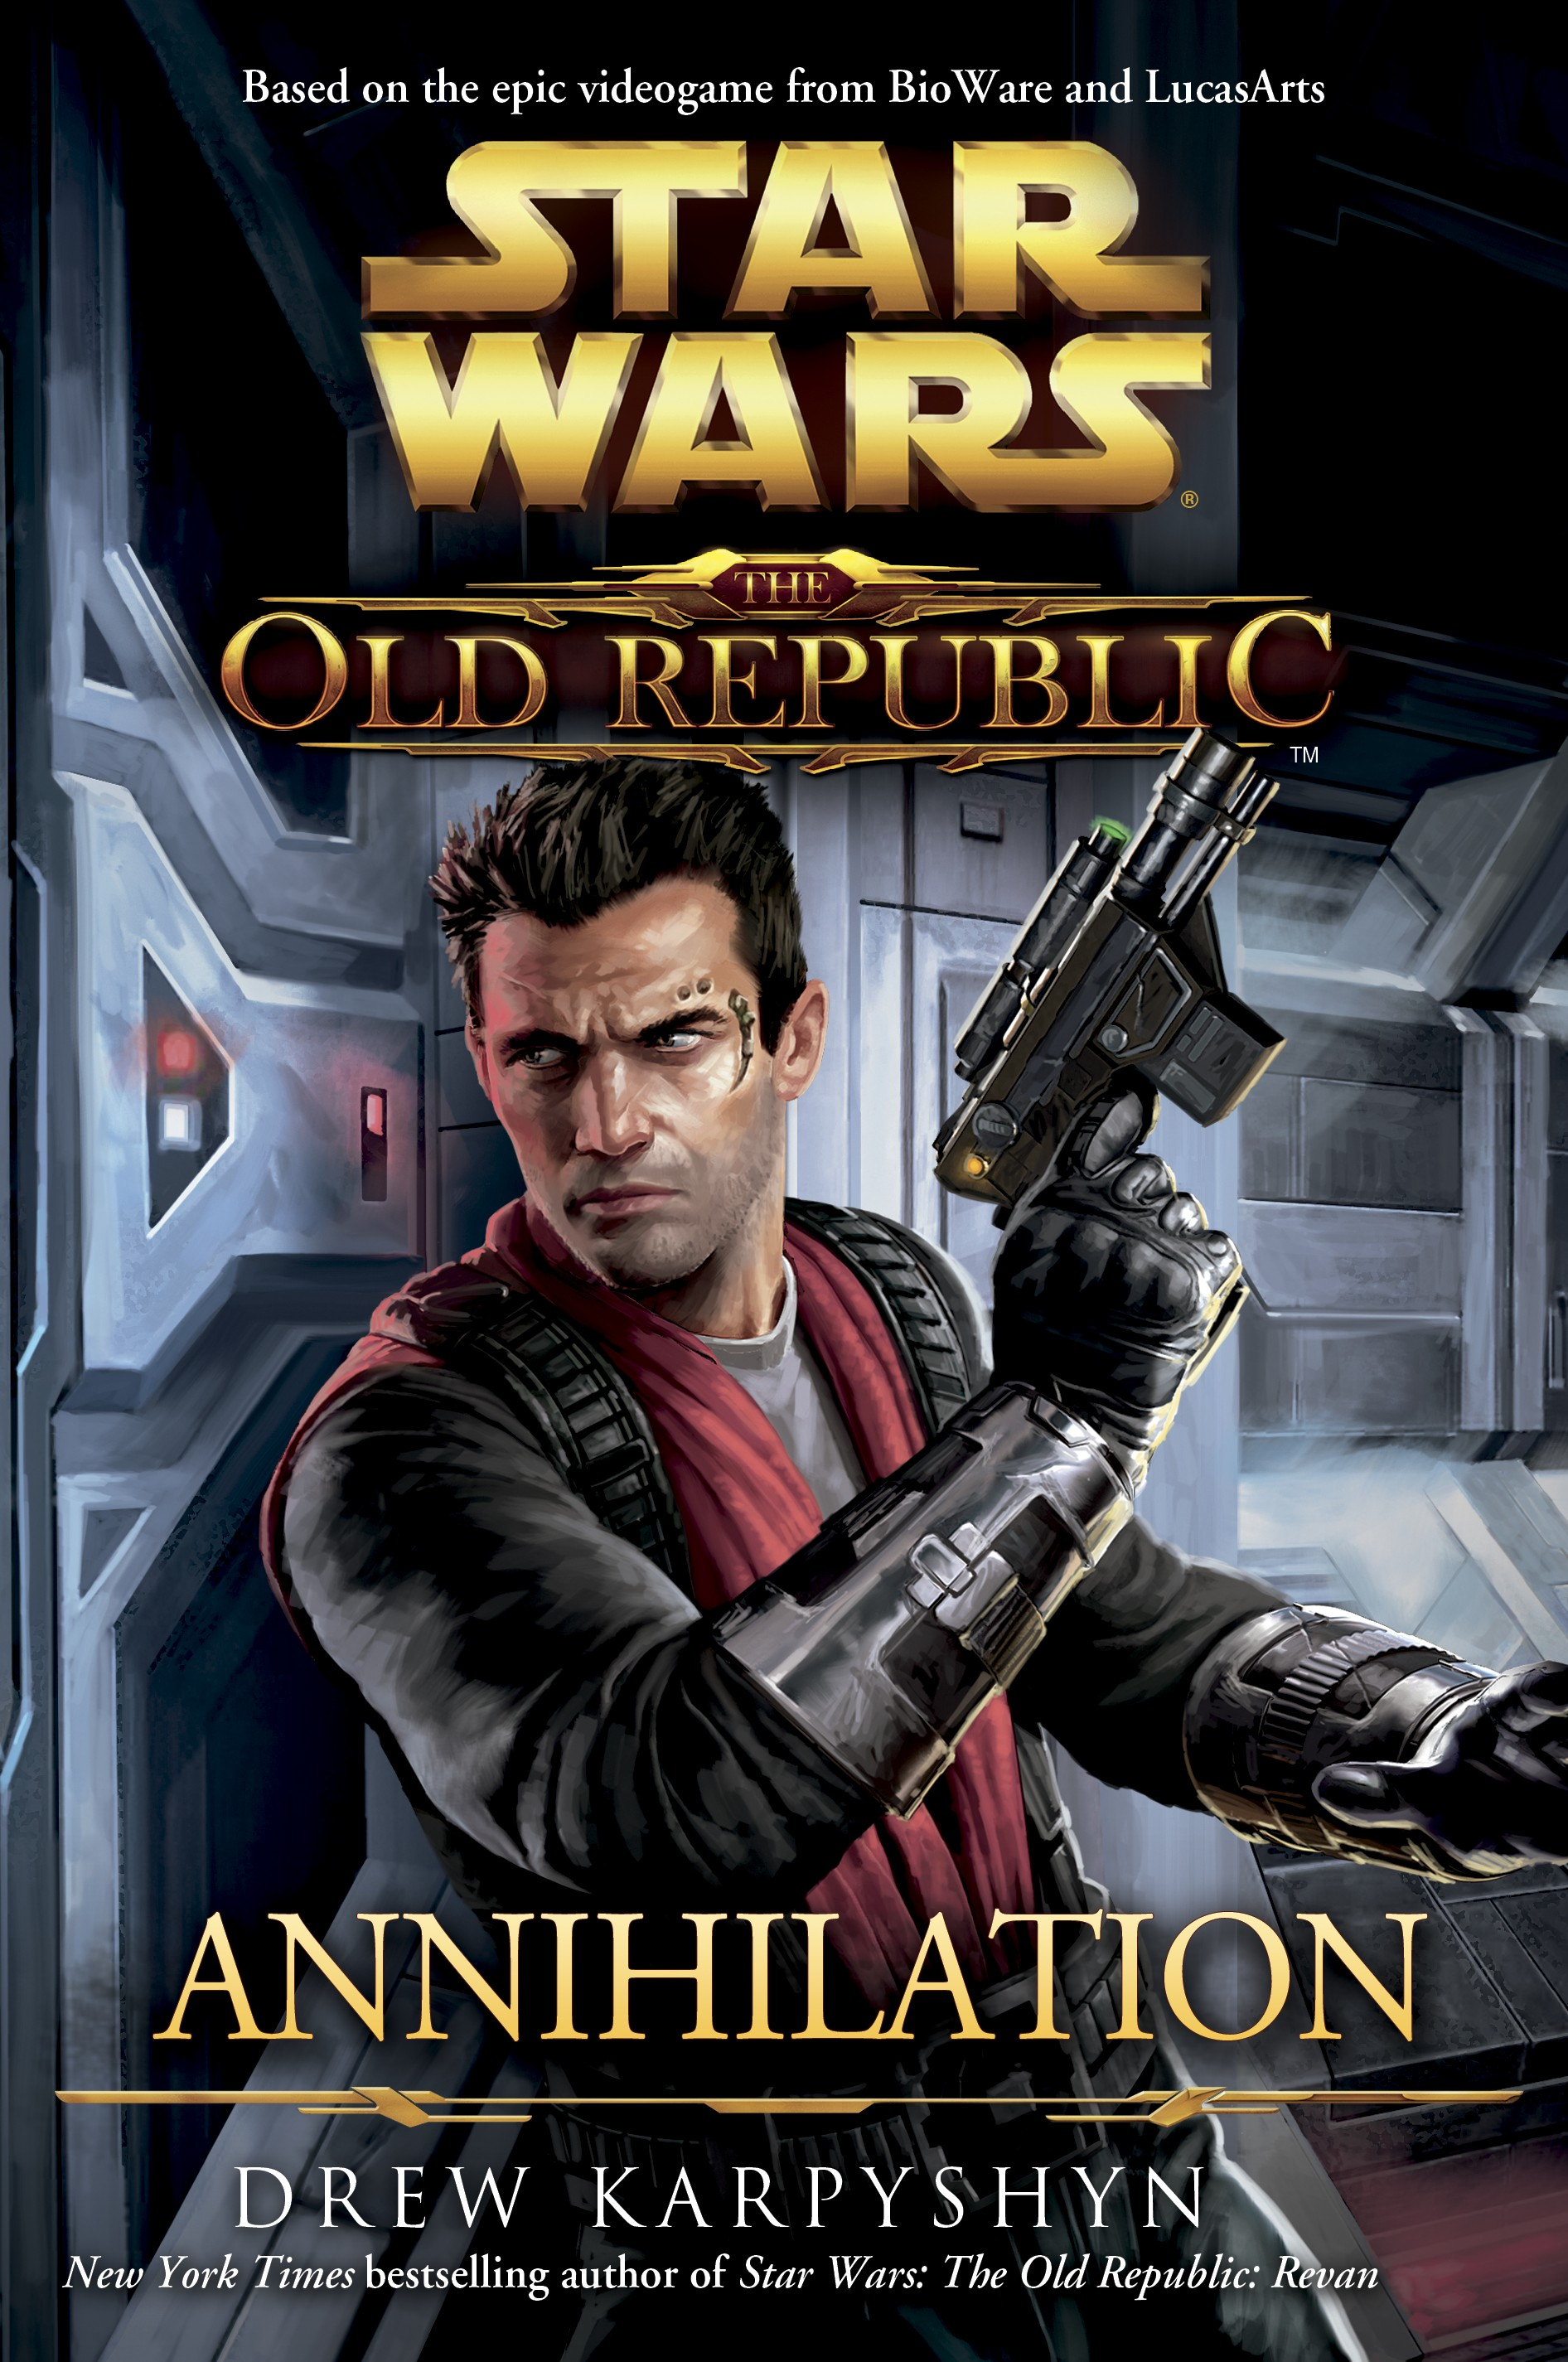 Star Wars The Old Republic: Annihilation (paperback)